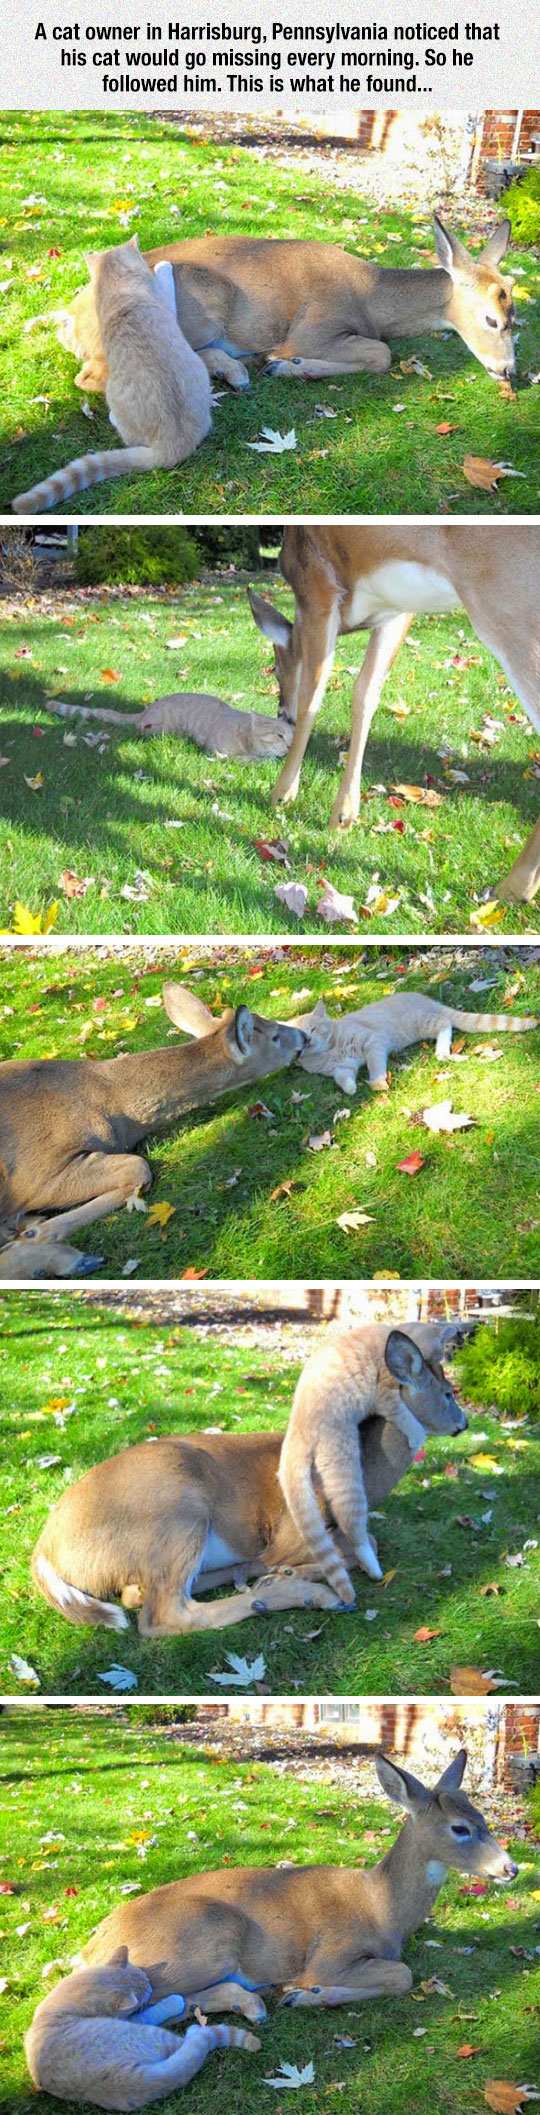 cool-cat-playing-deer-yard